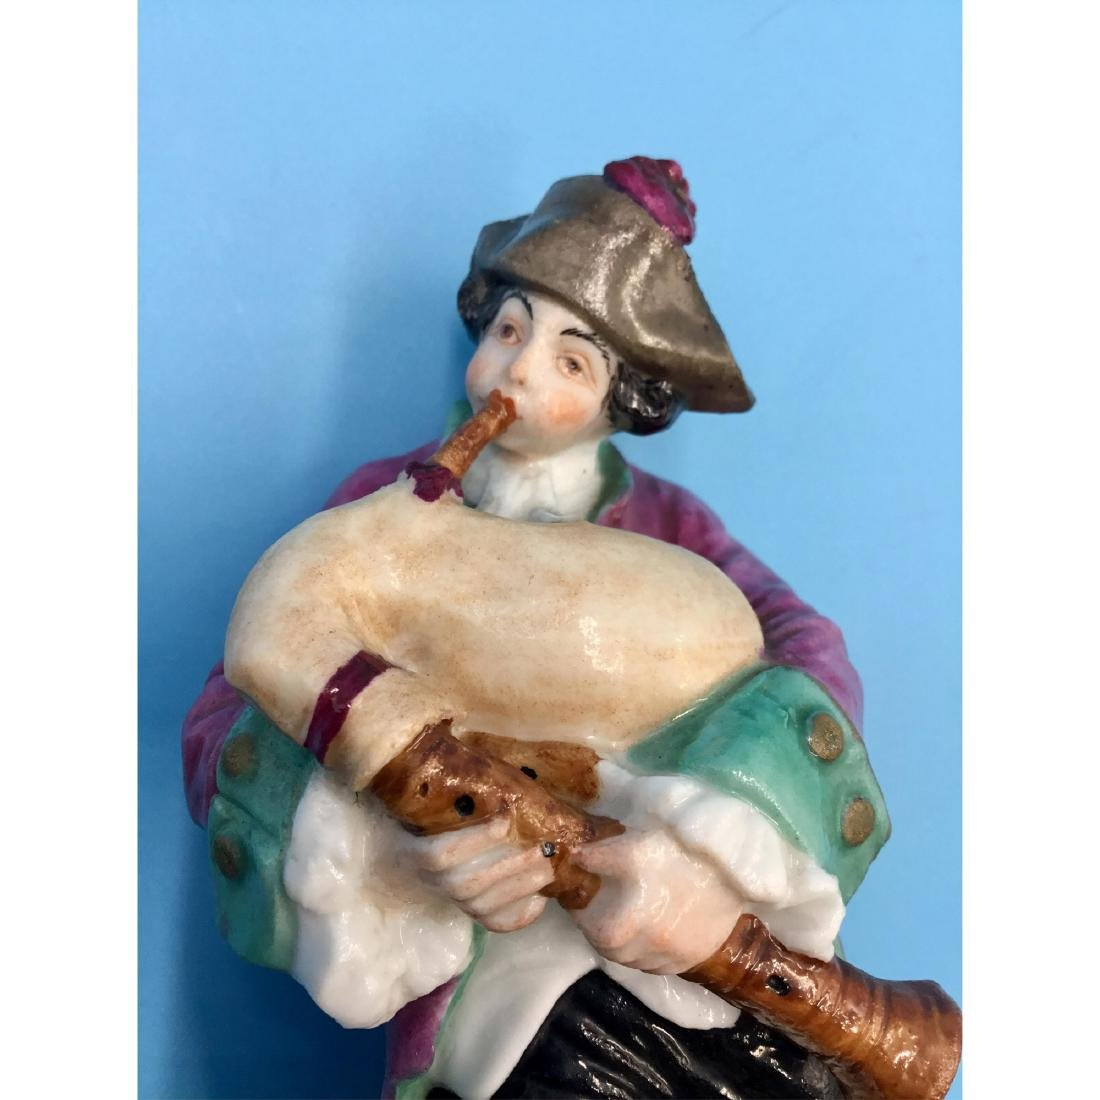 GROUP OF 3 SAMSON FRENCH PORCELAIN FIGURINES - 7